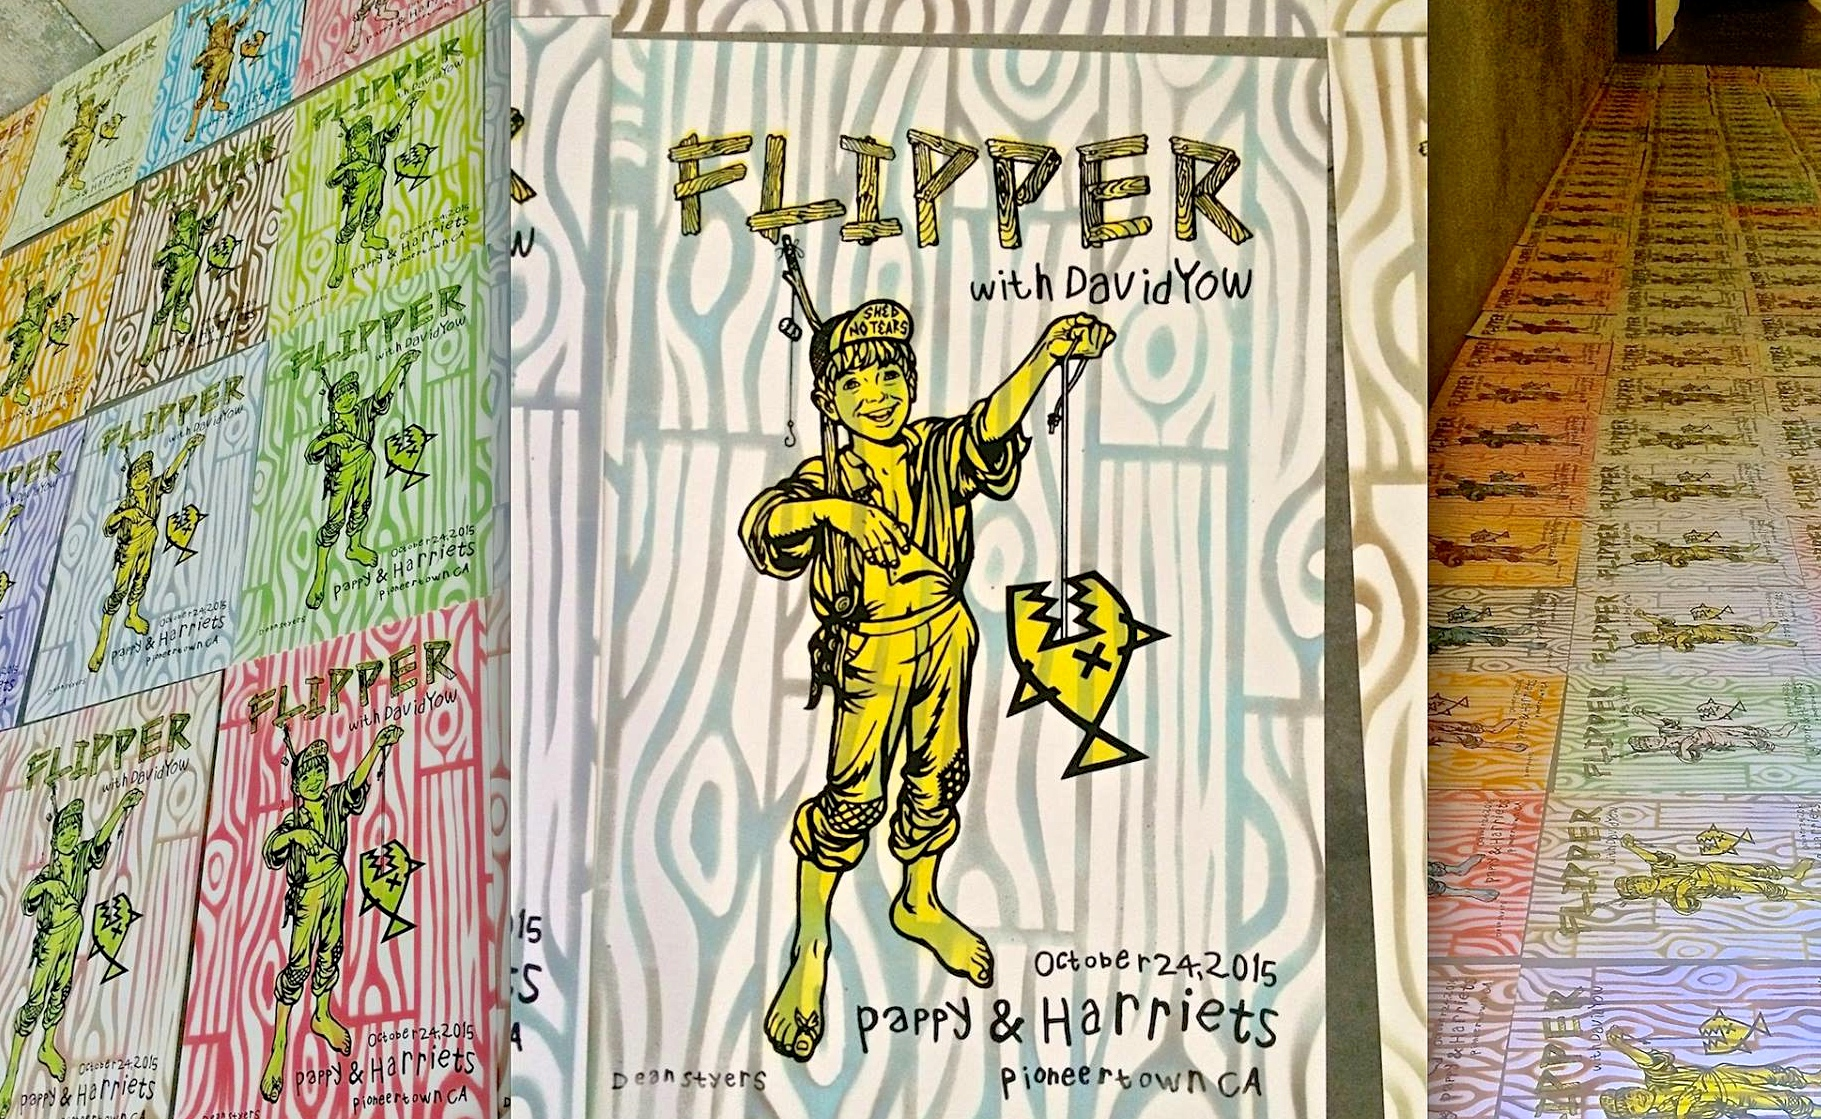 Flipper show poster. Screen print/stencil. Edition of 160, Hand screened/stenciled/signed & numbered (Available for purchase)